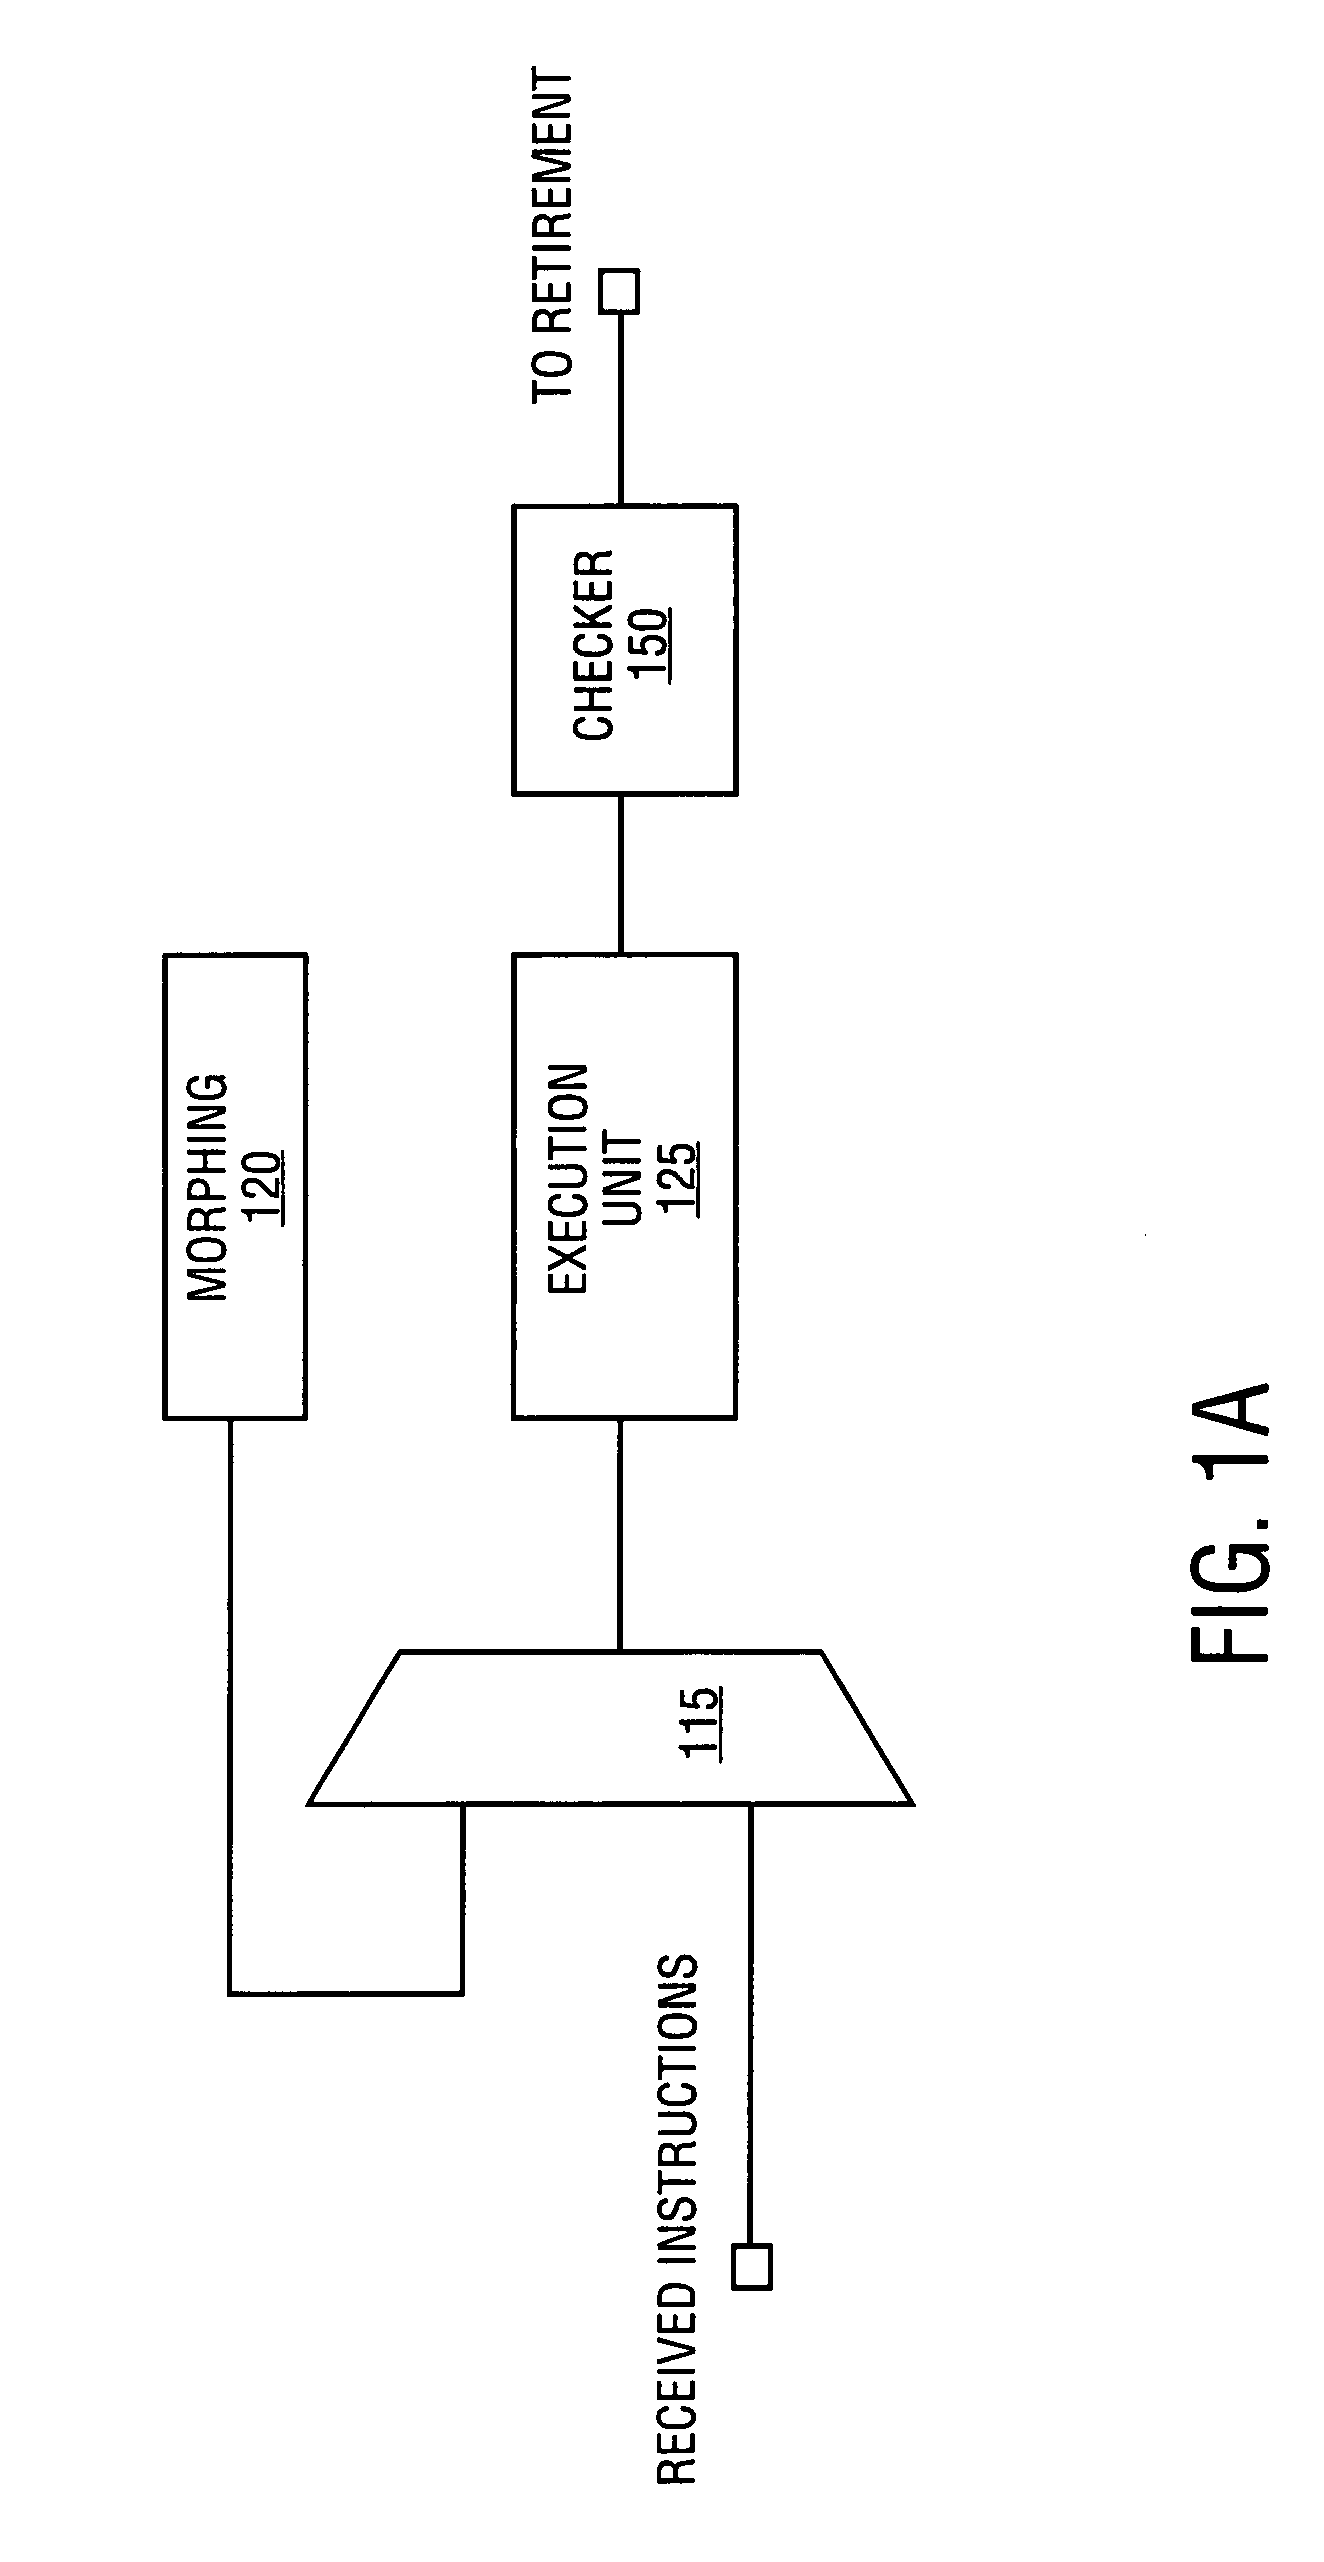 Patent Us8347066 Replay Instruction Morphing Google Patents Transistor Tester Circuit Diagram And Instructions Drawing